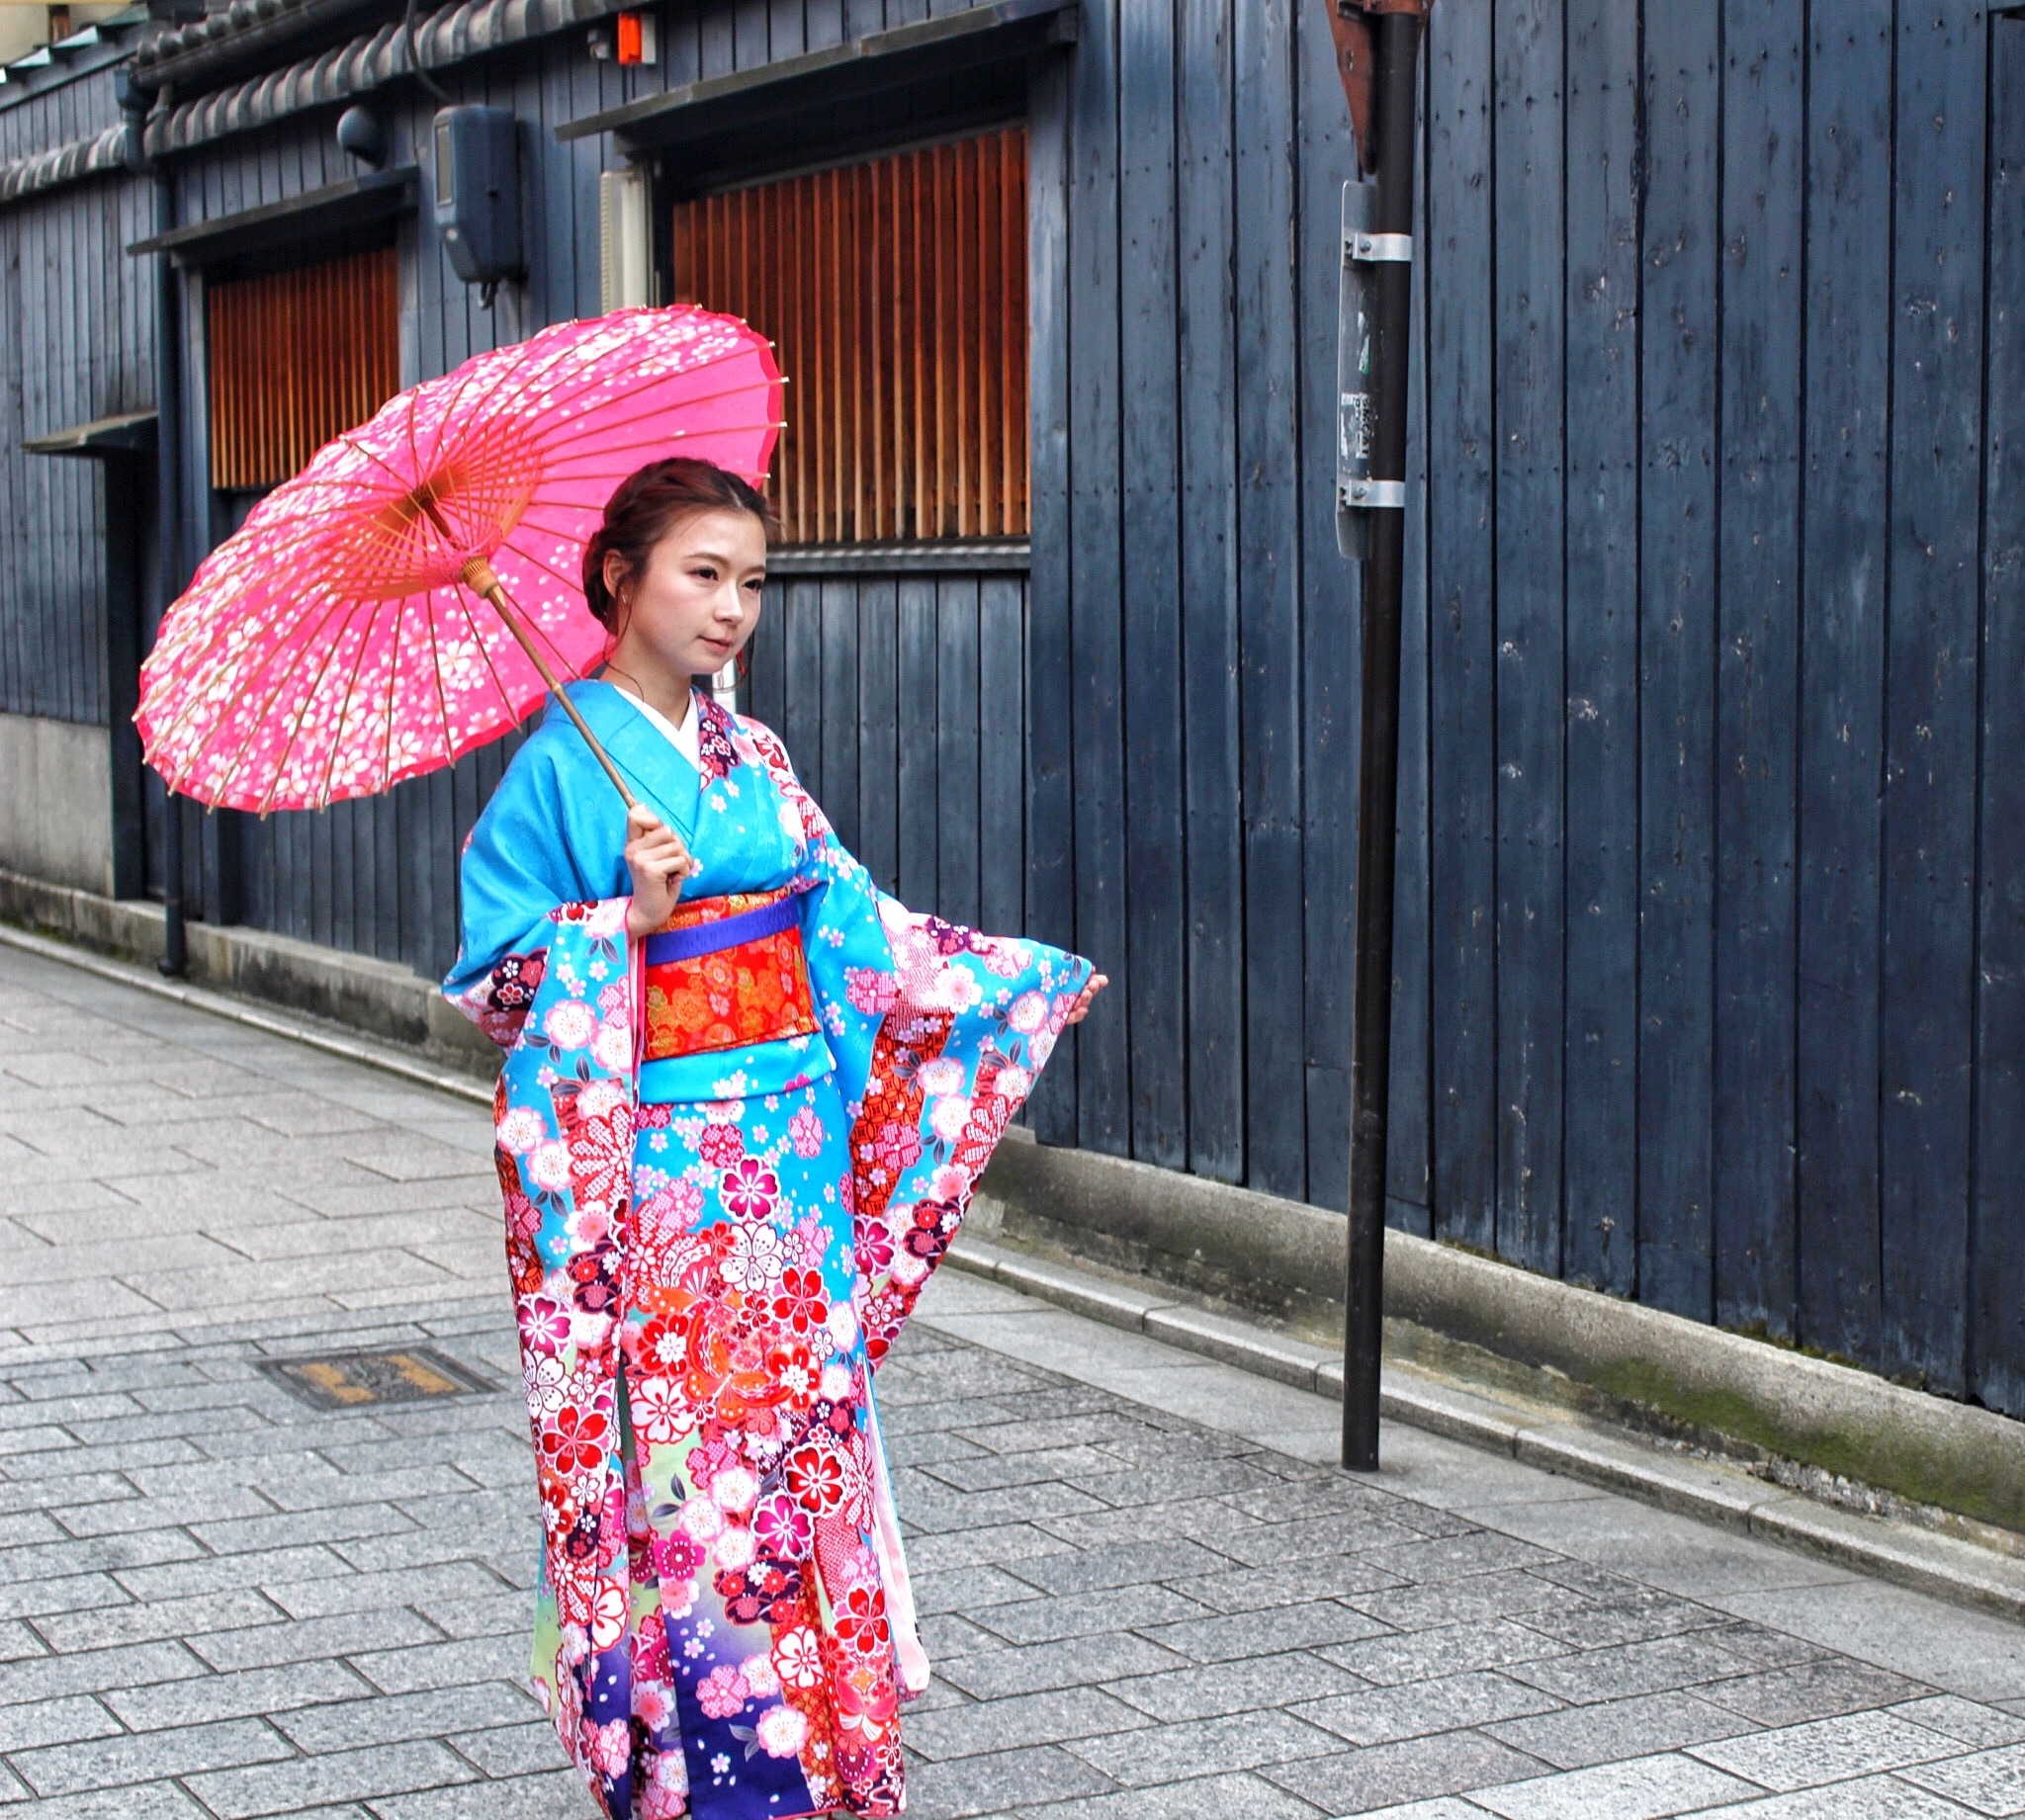 A girl in Geisha attire on Hanami-Koji Street, Kyoto.